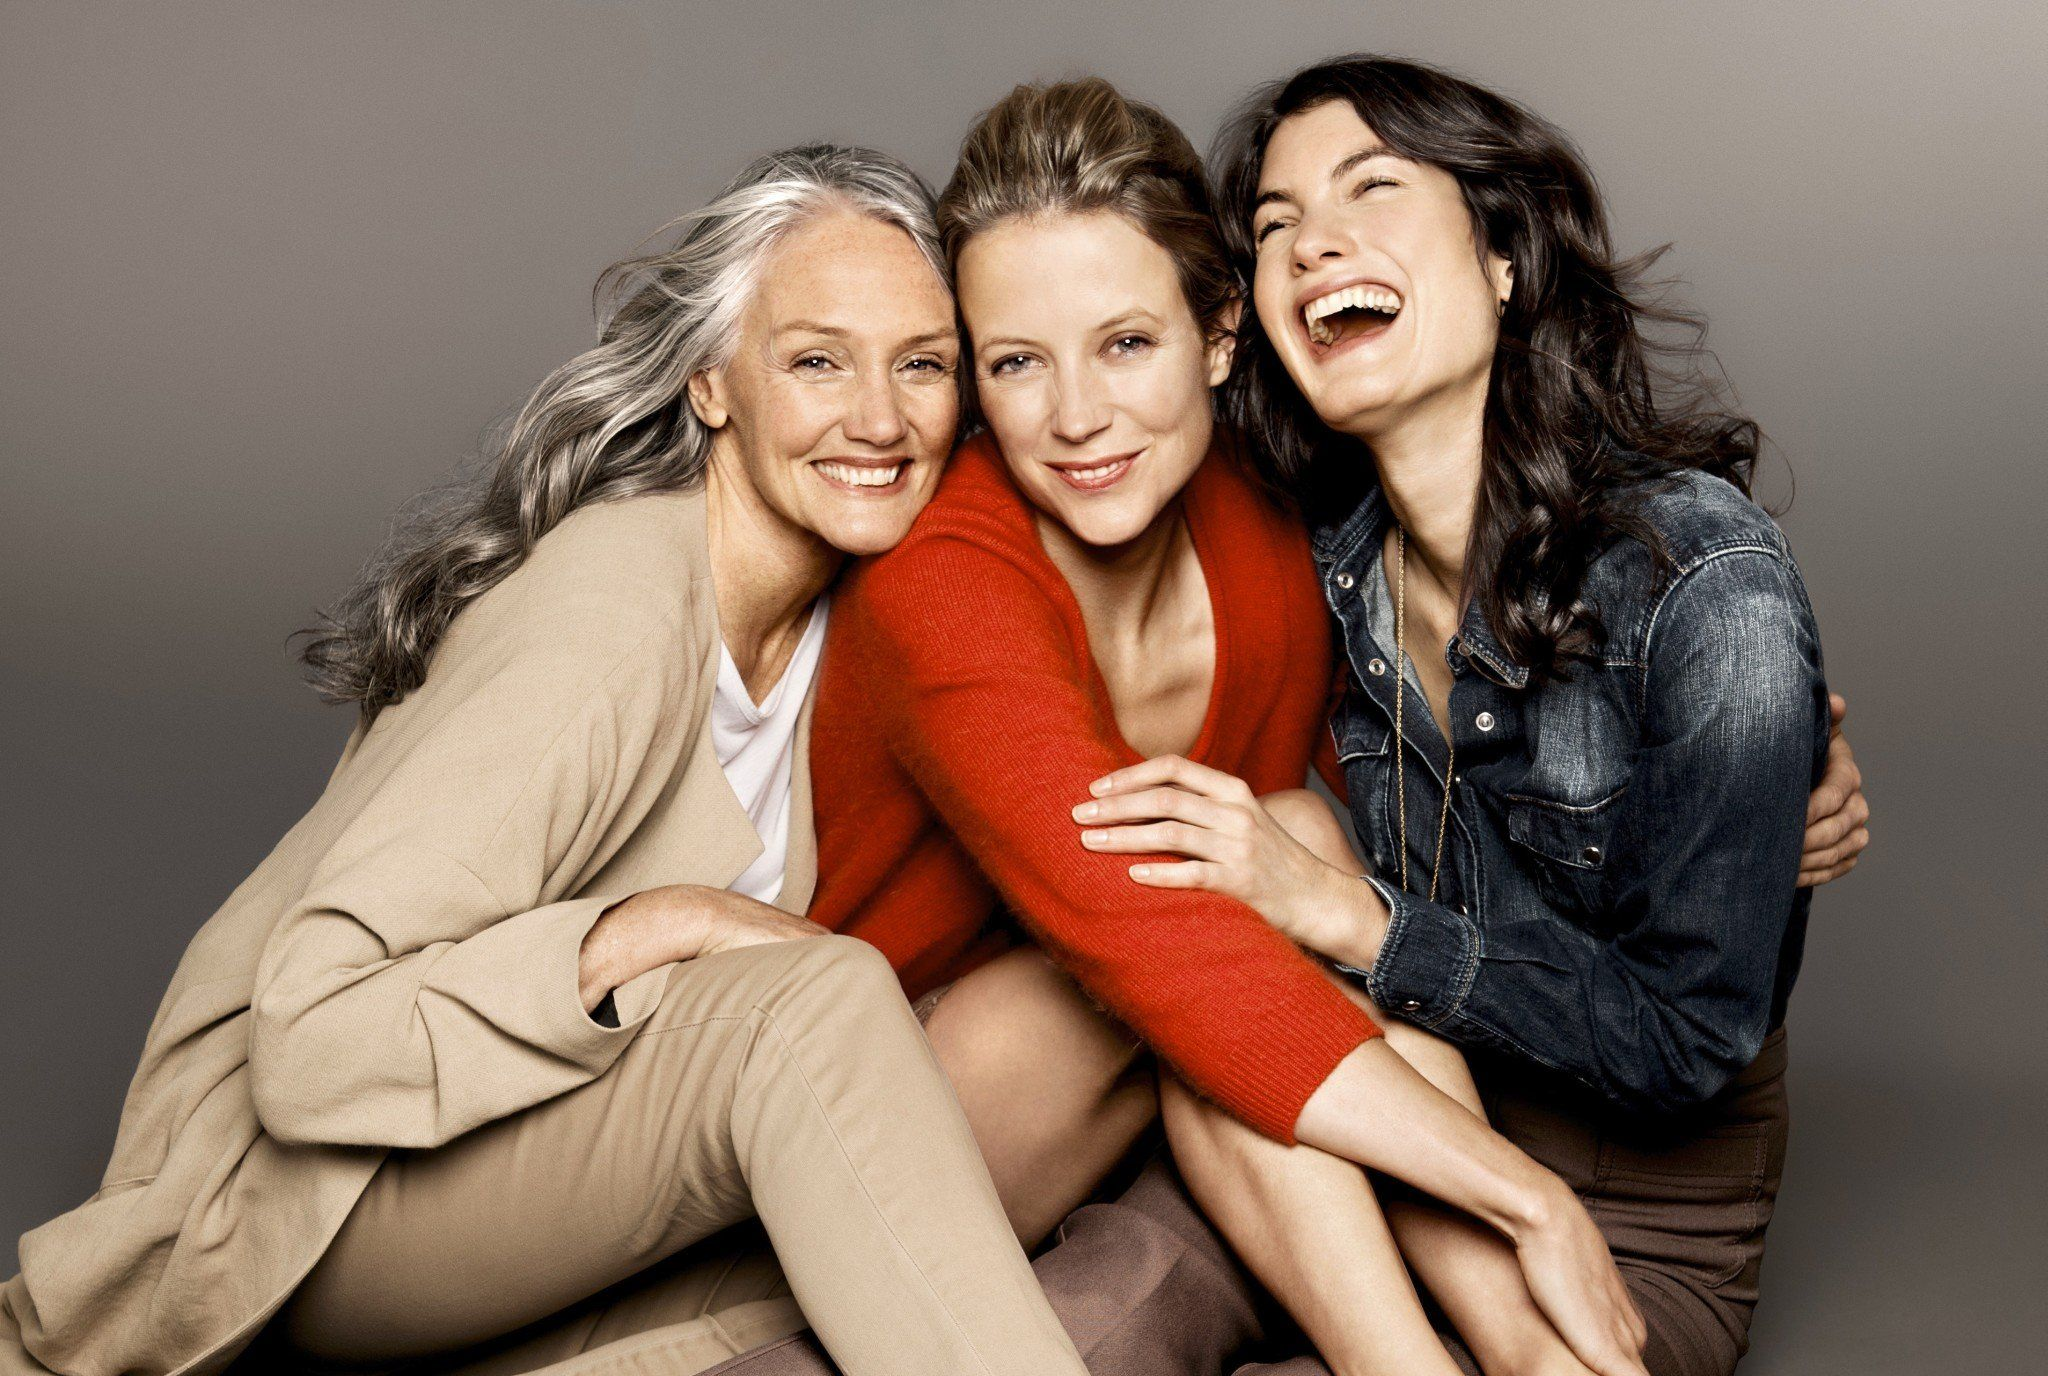 three happy women of all ages sitting together